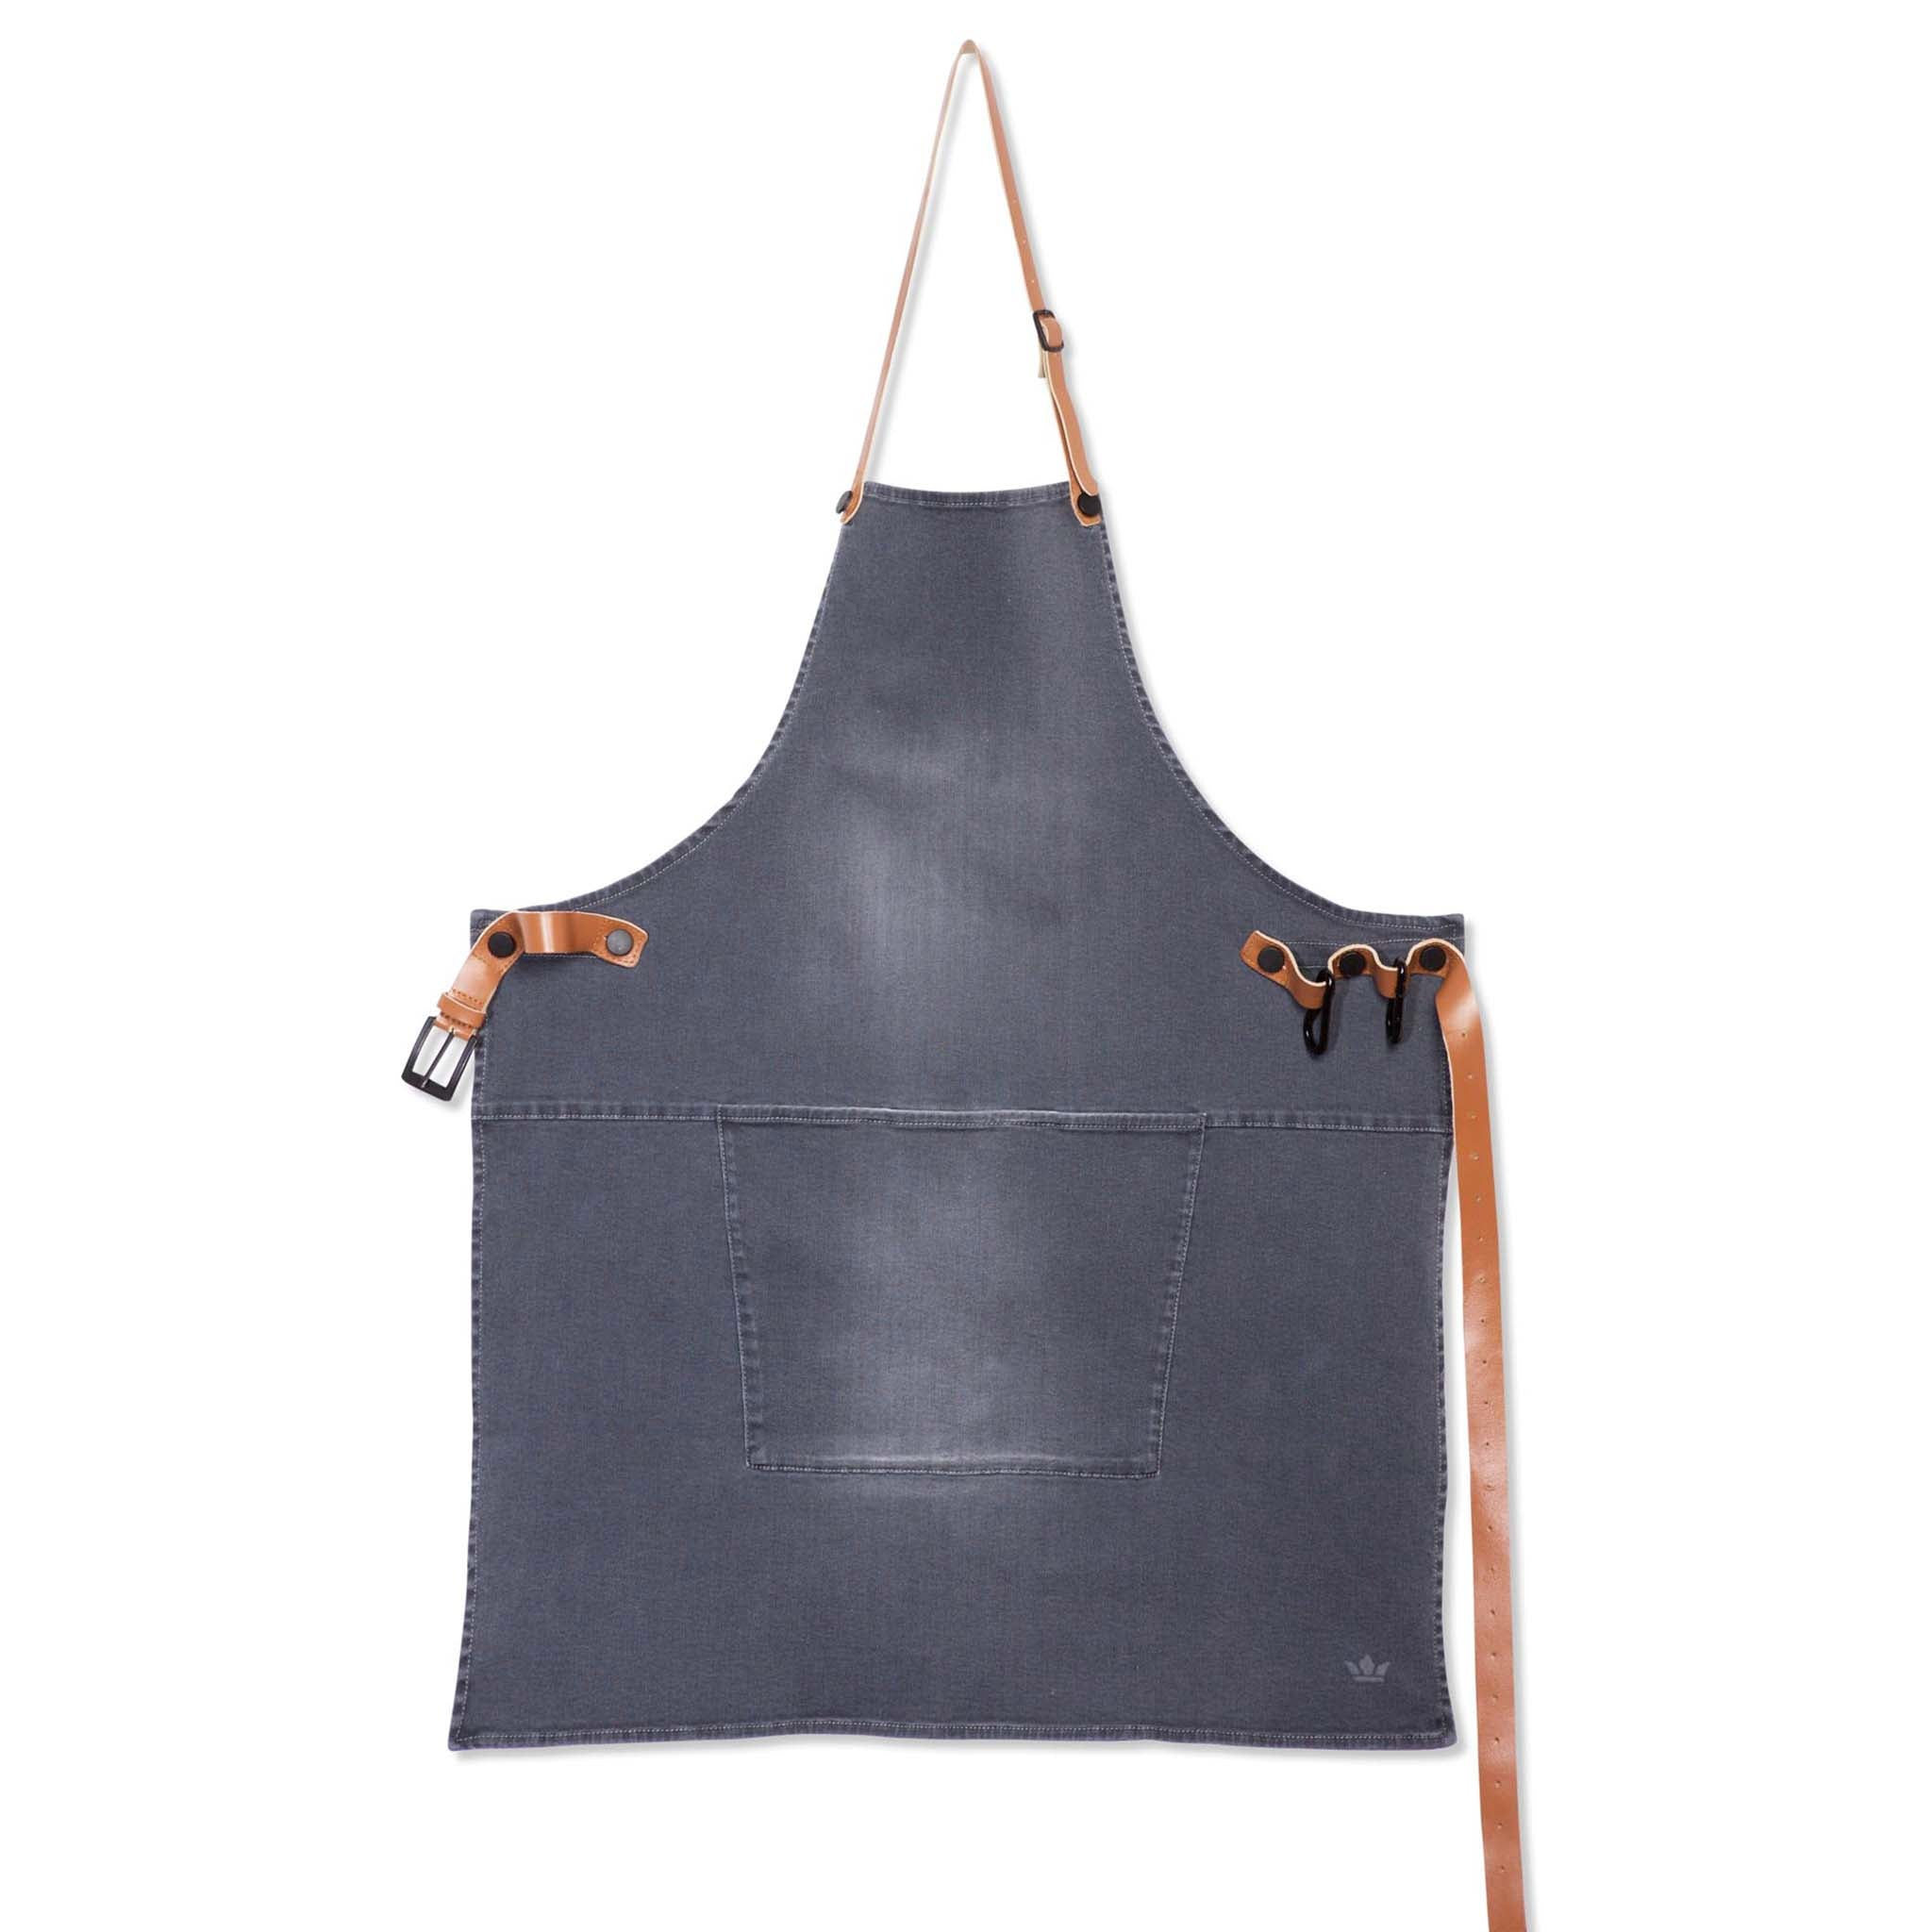 Dutchdeluxes Canvas BBQ Apron in Washed Grey Cookware Kitchen Clothing